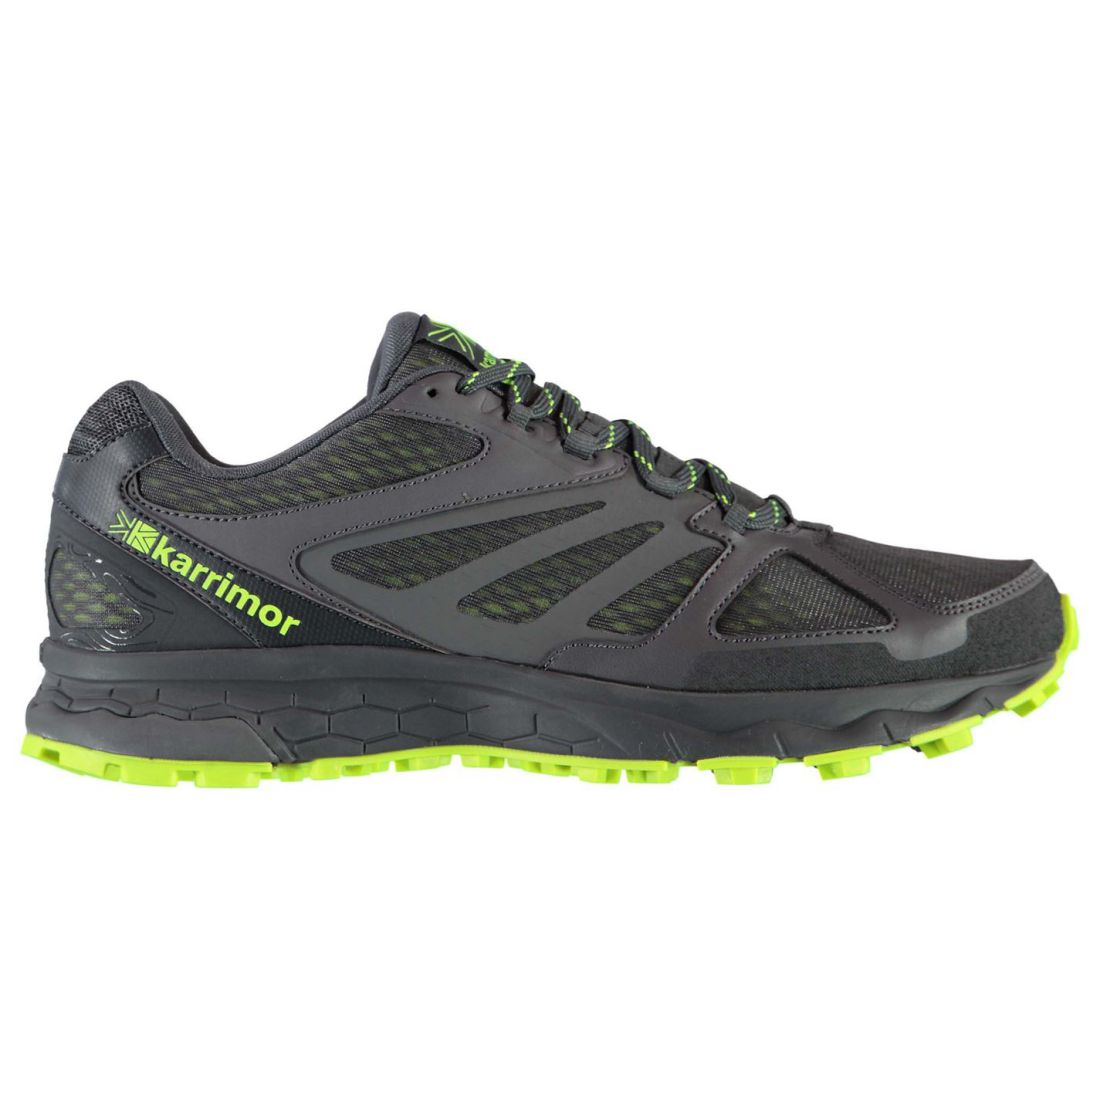 4fc8cd9231cf93 Details about Karrimor Mens Tempo 5 Trail Running Shoes Trainers  Lightweight Mesh Upper